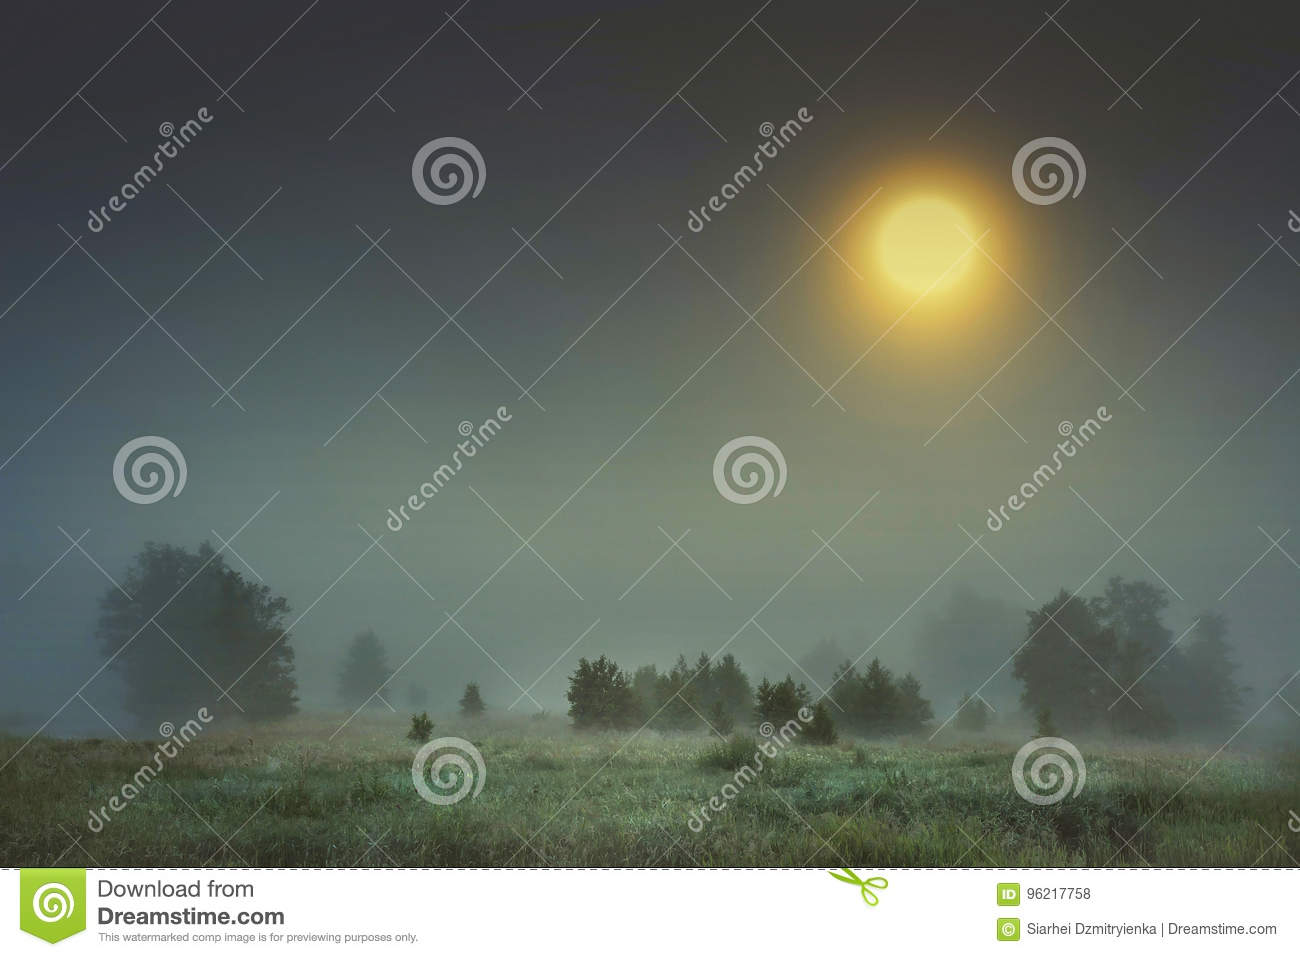 Autumn night landscape of cold foggy nature with large bright yellow moon in sky.